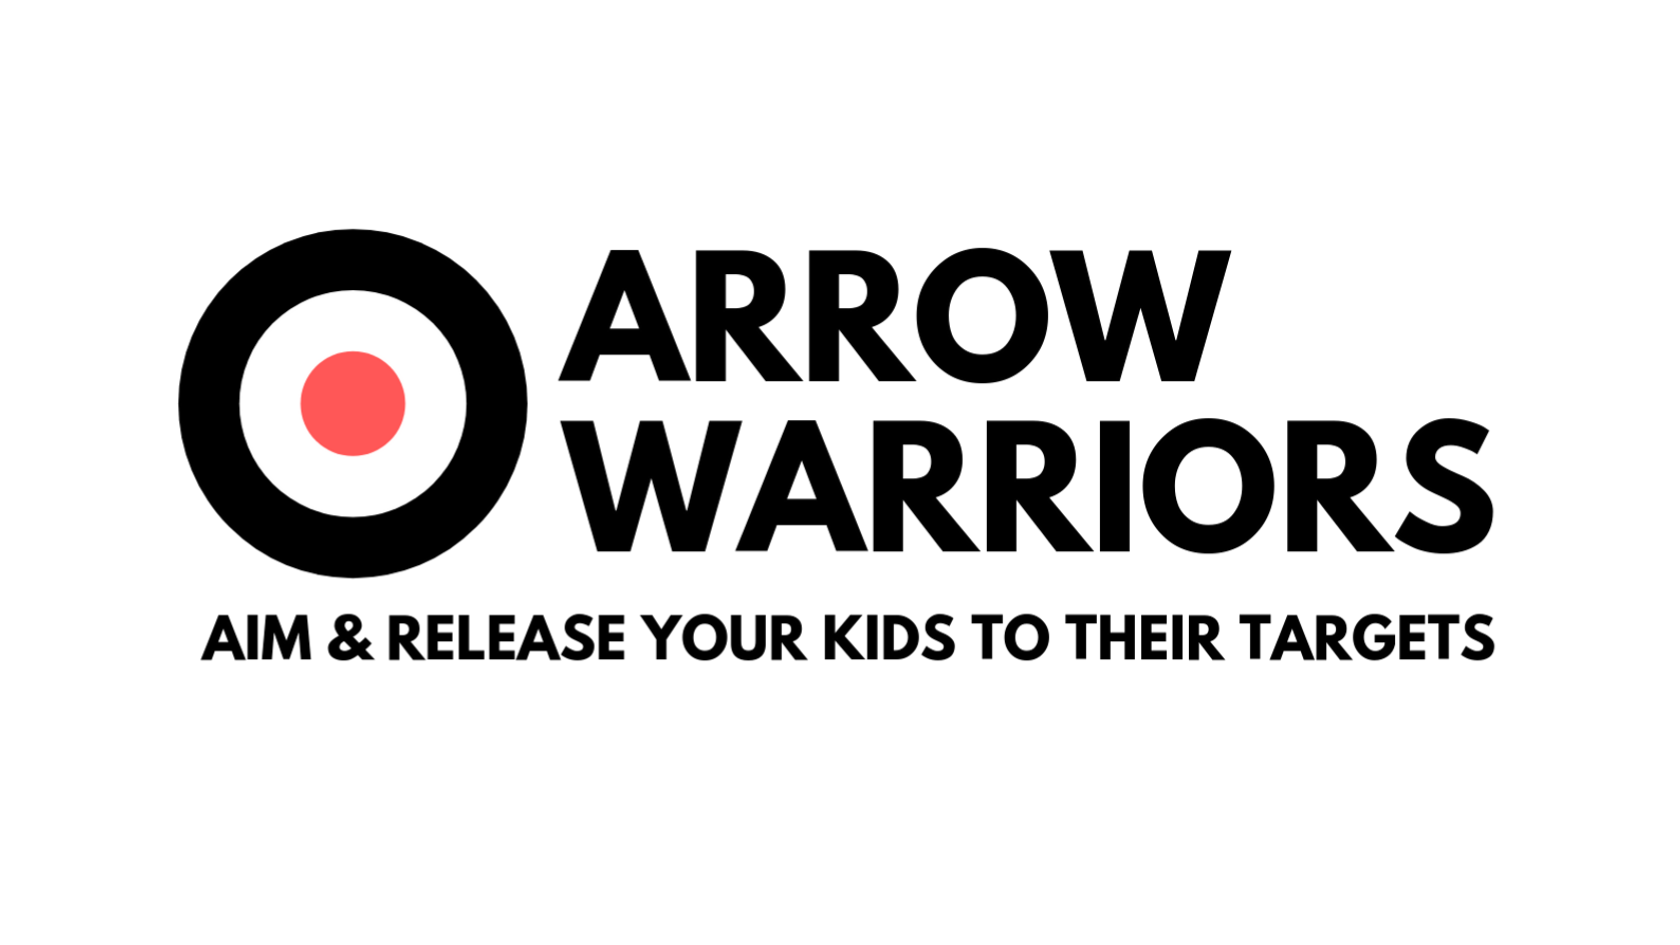 """We started Arrow Warriors to give parents resources to help them raise up their children to prepare them for life. Psalms 127:4 says """" Like arrows in the hand of a warrior, so are the children of one's youth. """" We believe children are a blessing from the Lord. Every kid was created on purpose for a purpose. Our job as a parent, like a warrior with their bow and quiver of arrows, is to aim our children and release them to hit their targets.  Click the Arrow Warrior image to get more parenting resources."""